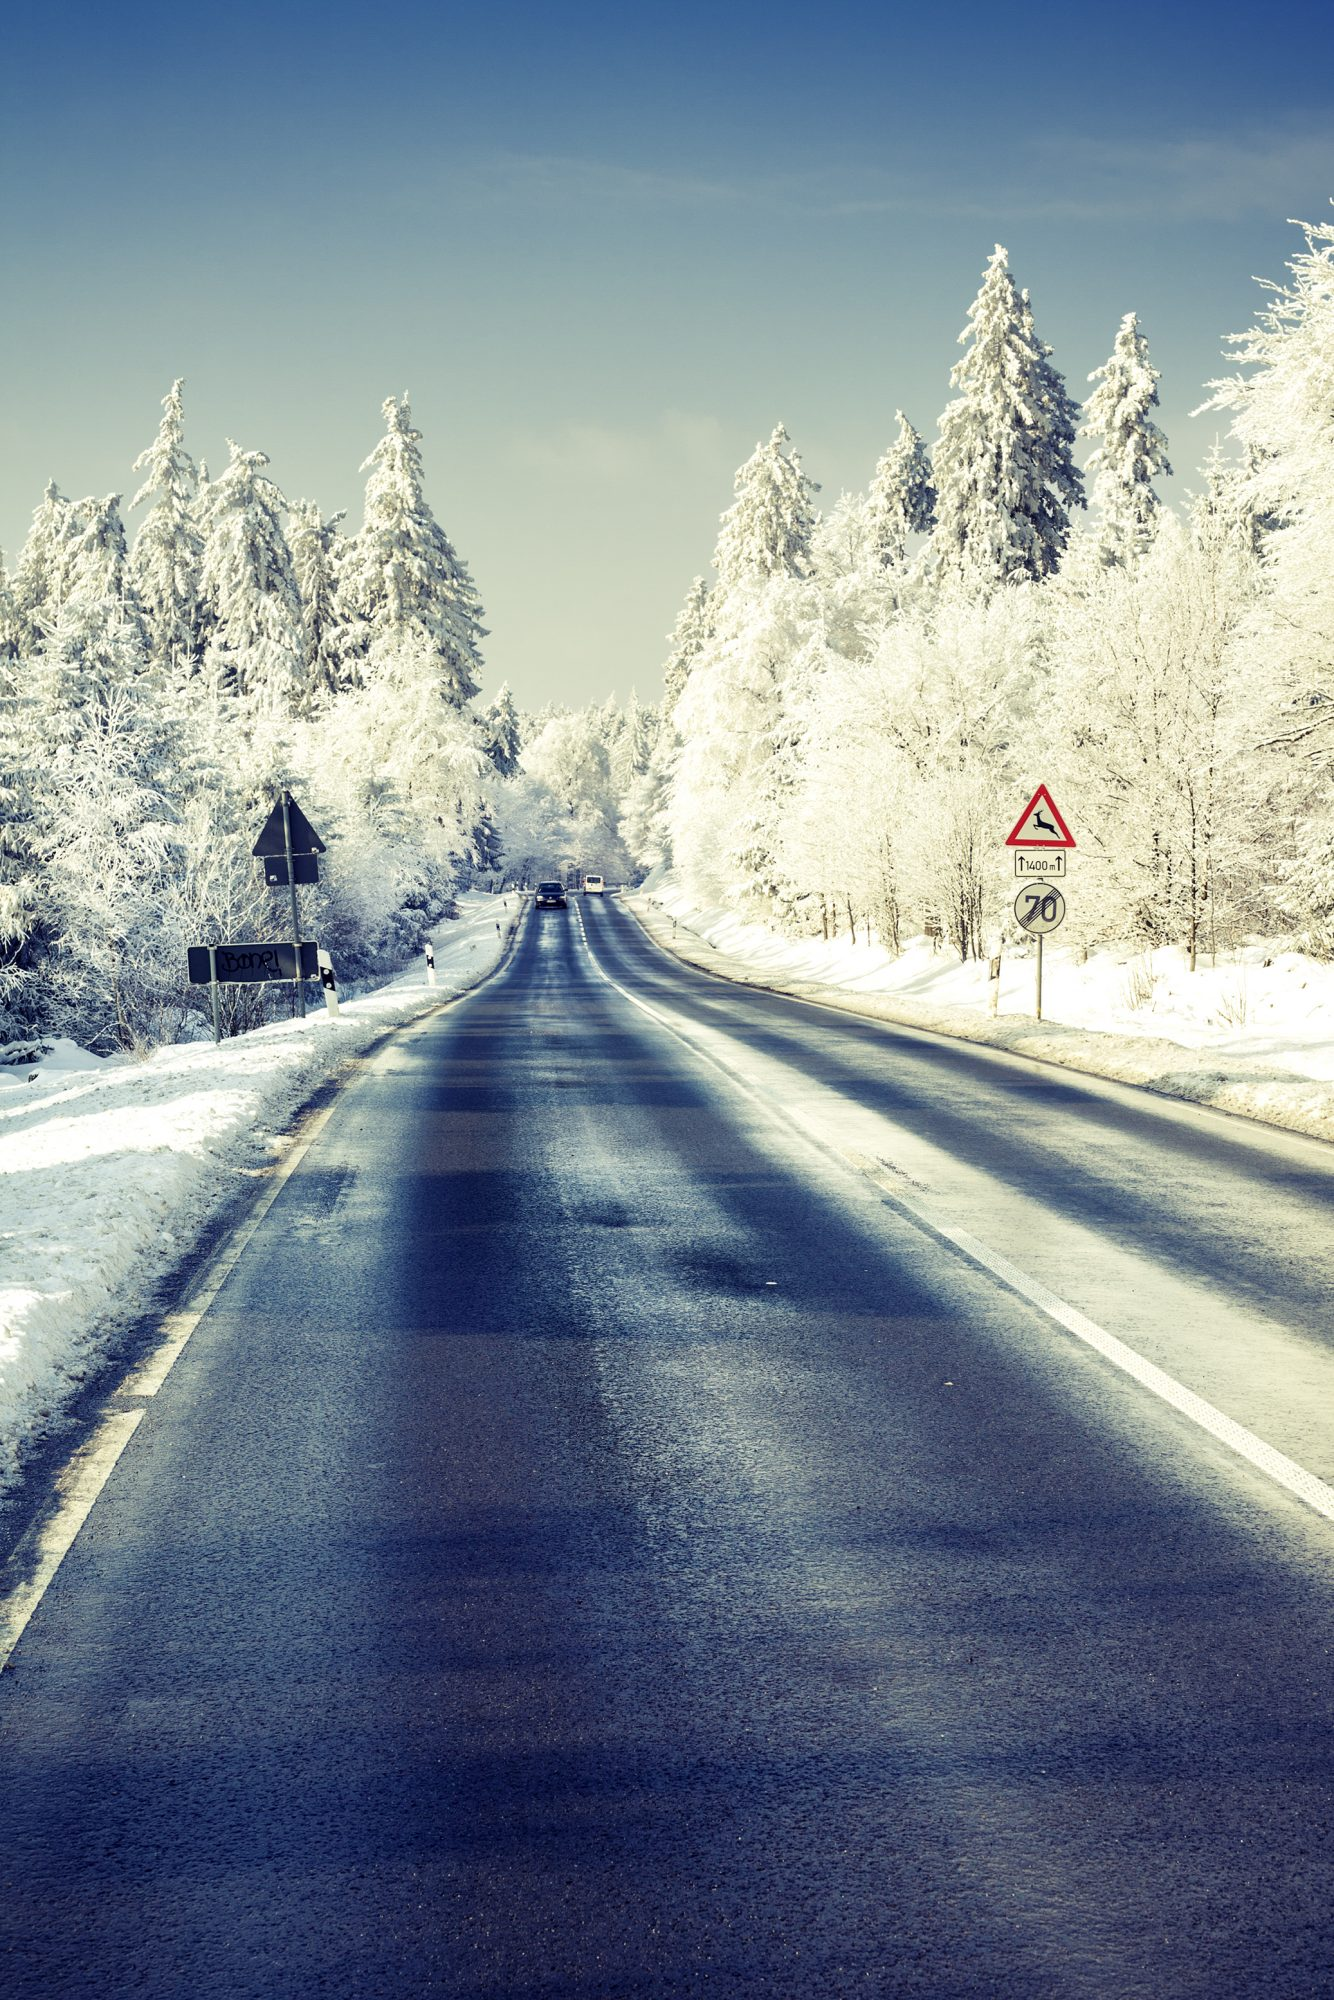 holiday travel essay real simple snowy road